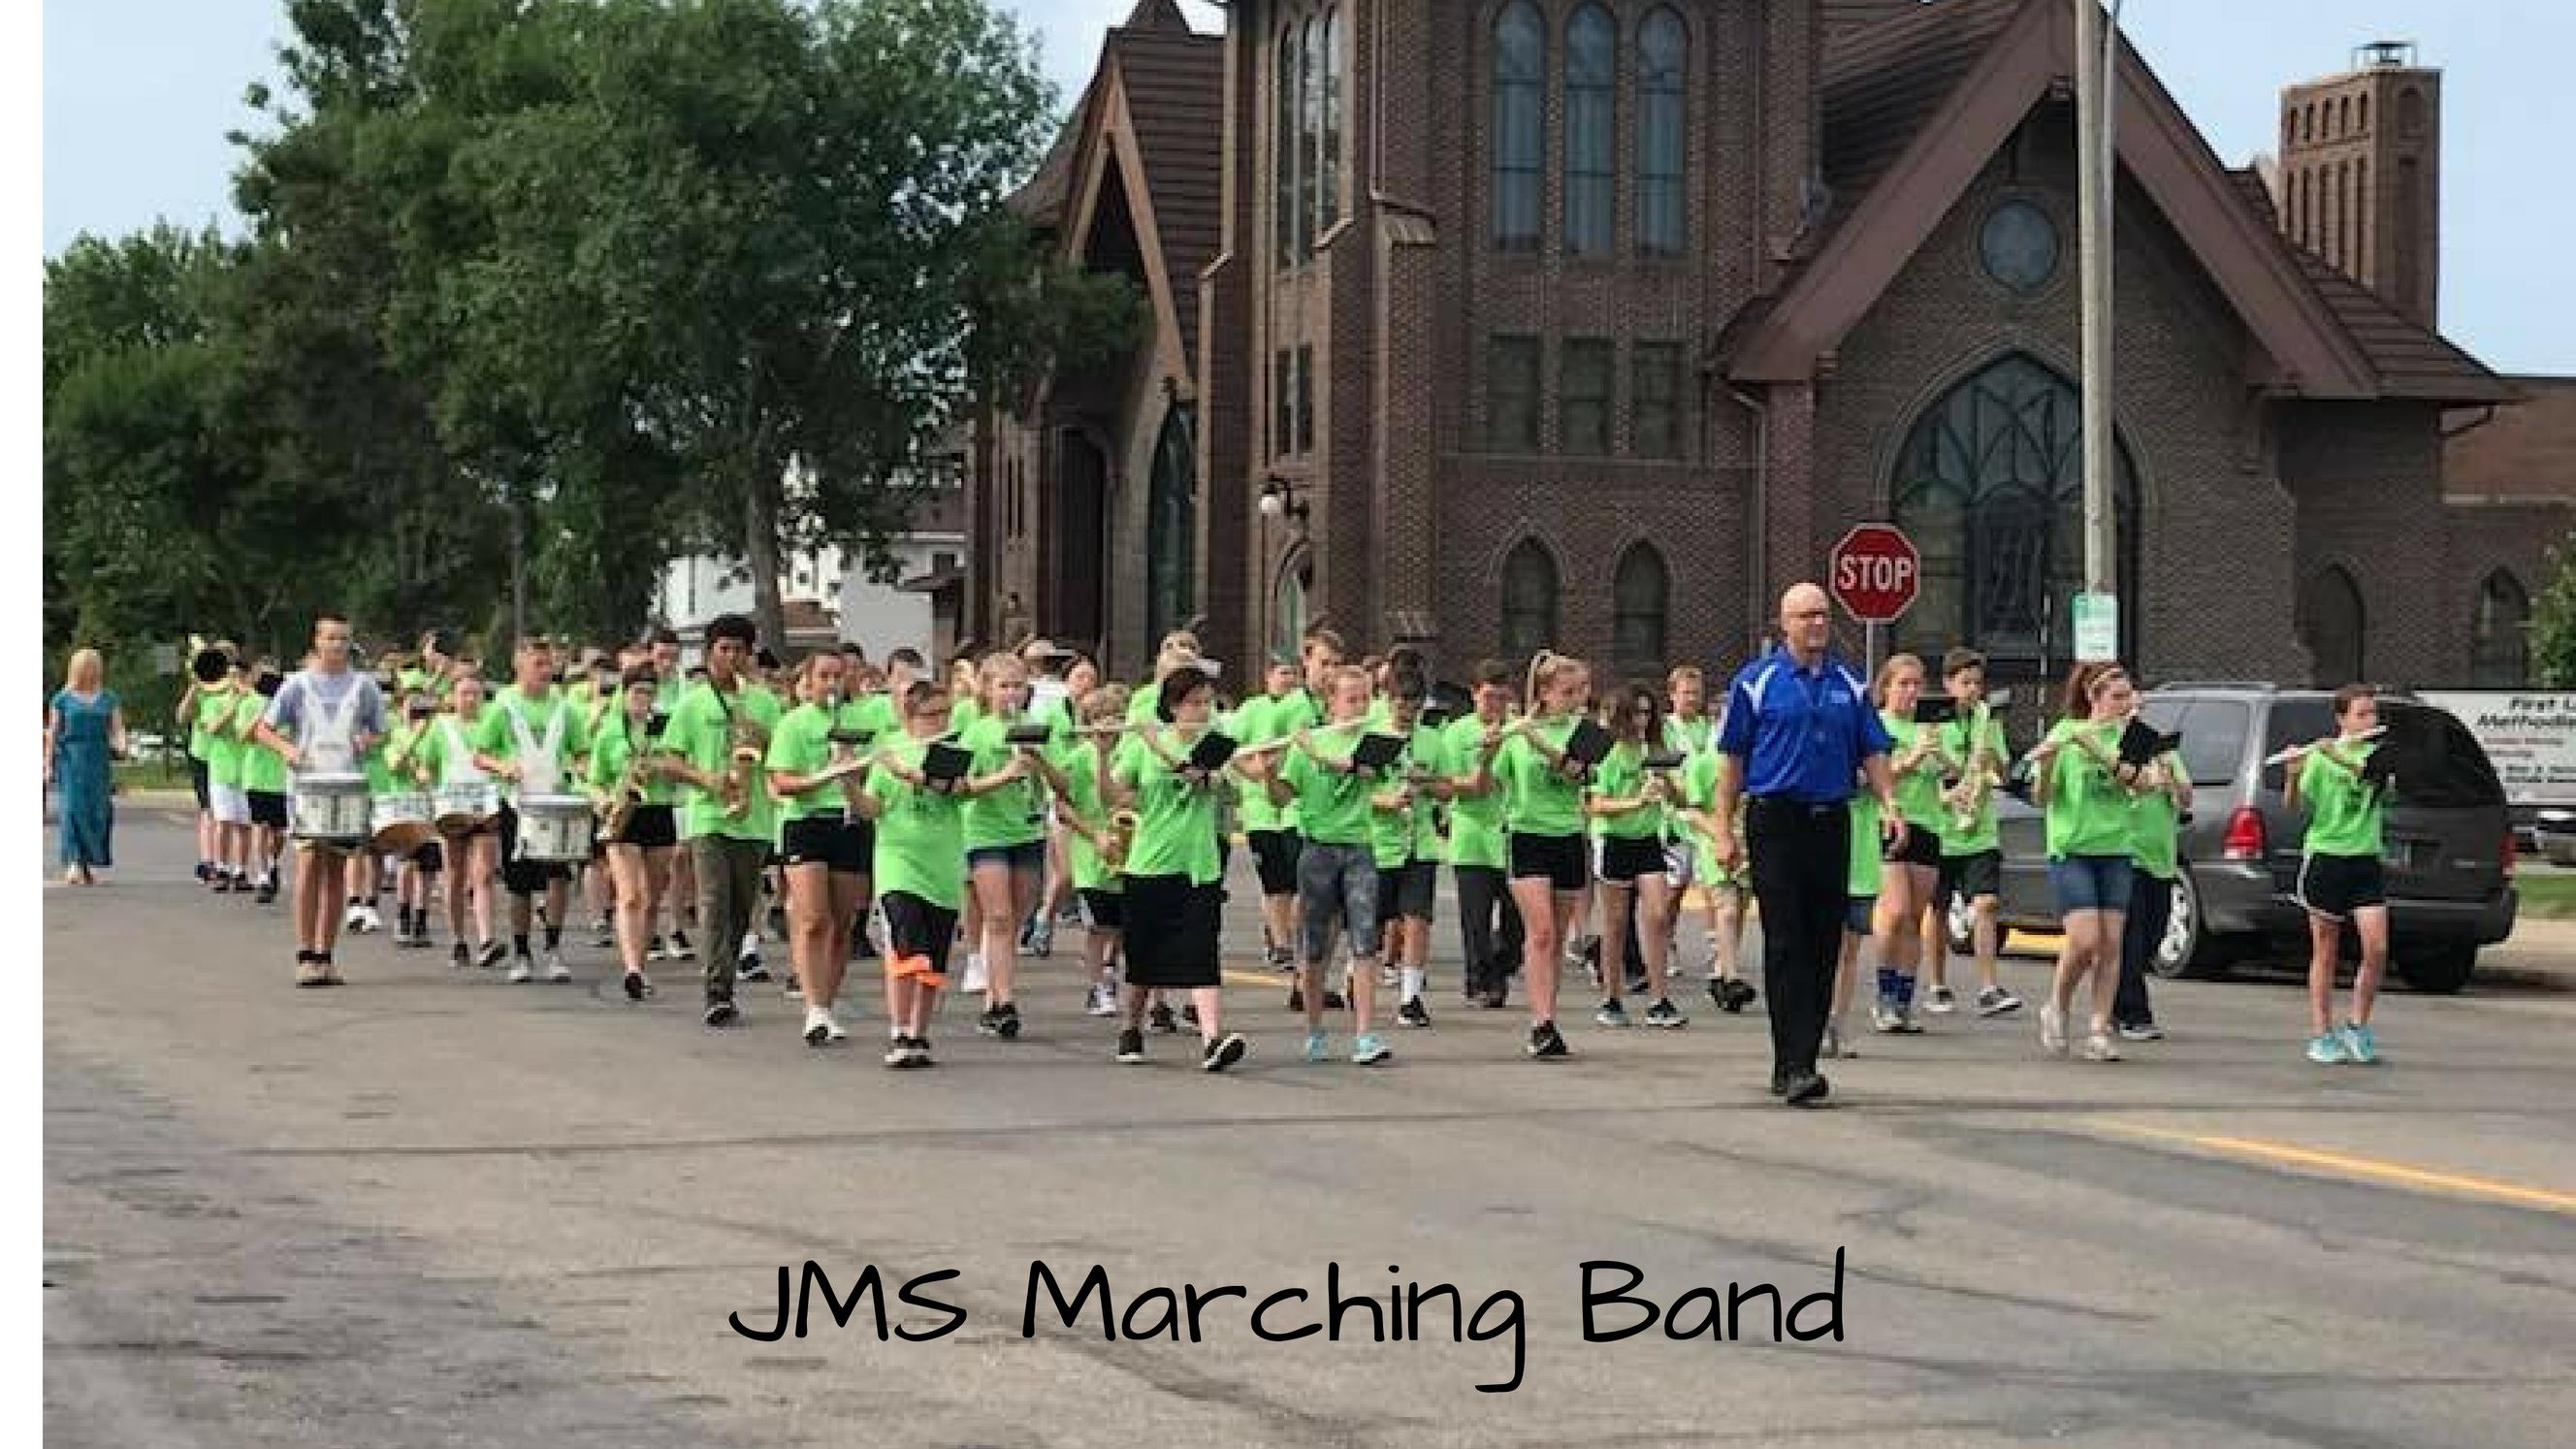 JMS Marching Band